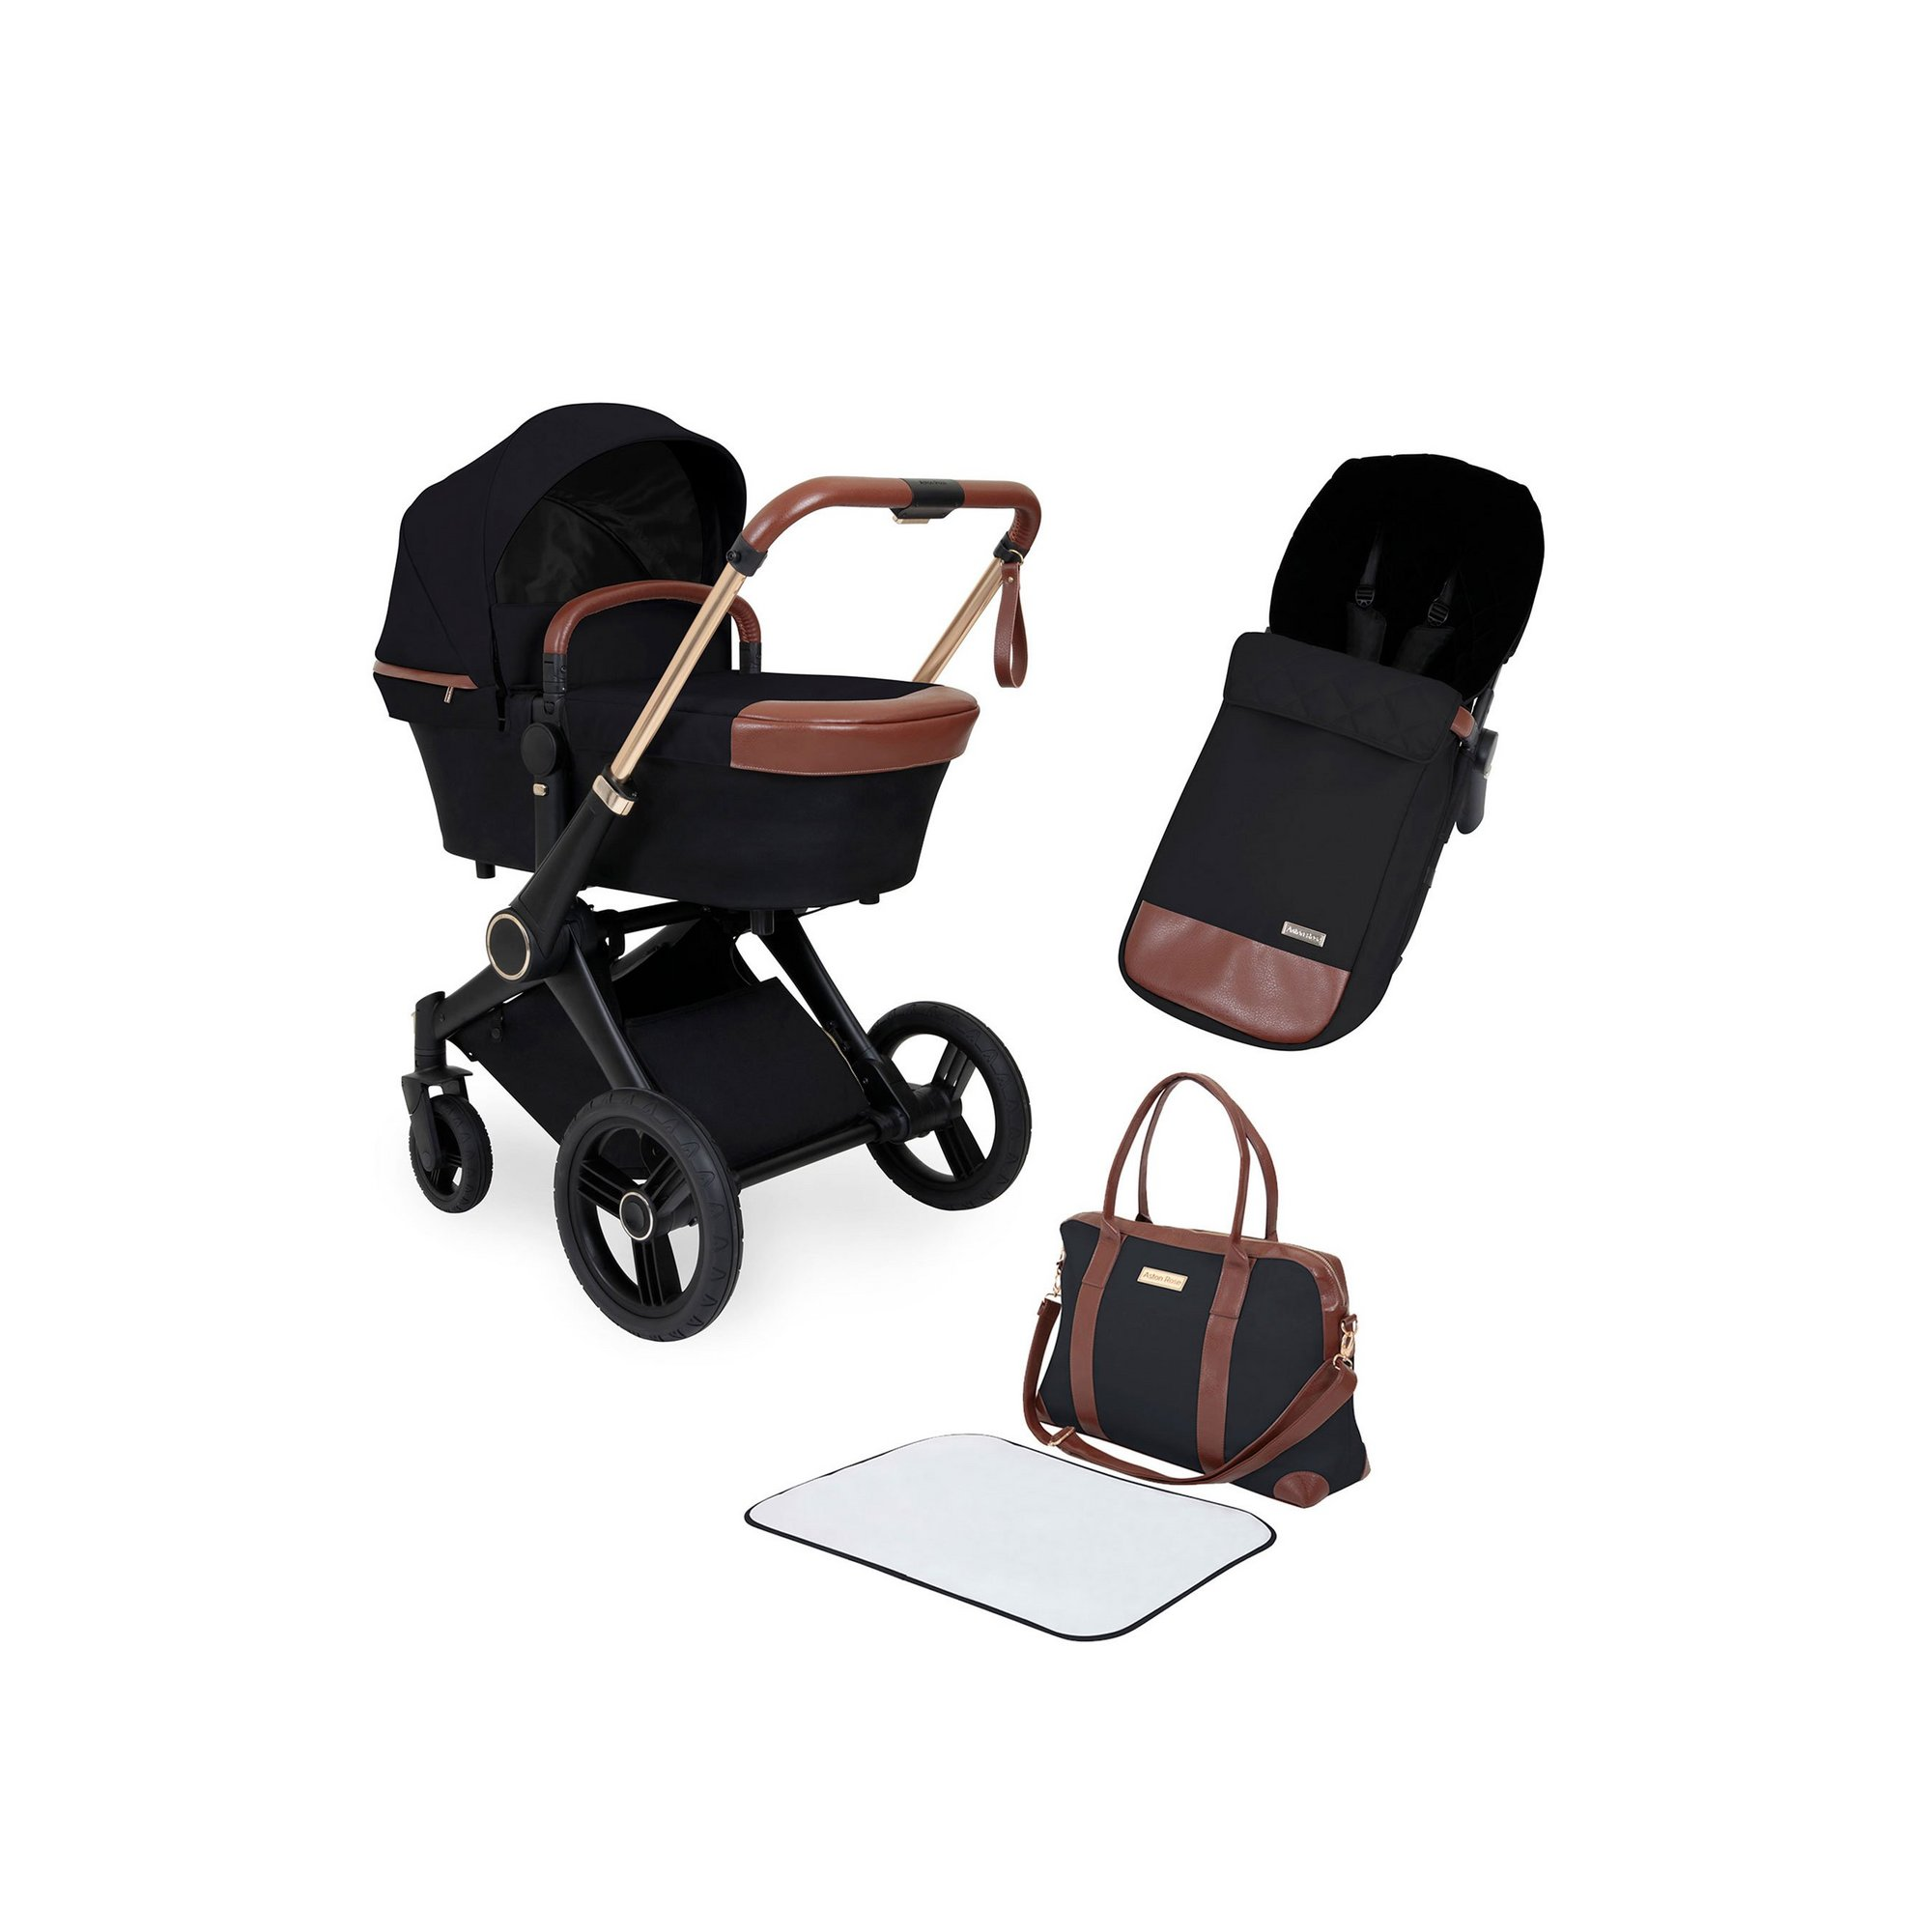 Image of Aston Rose 2 In 1 Carrycot and Pushchair